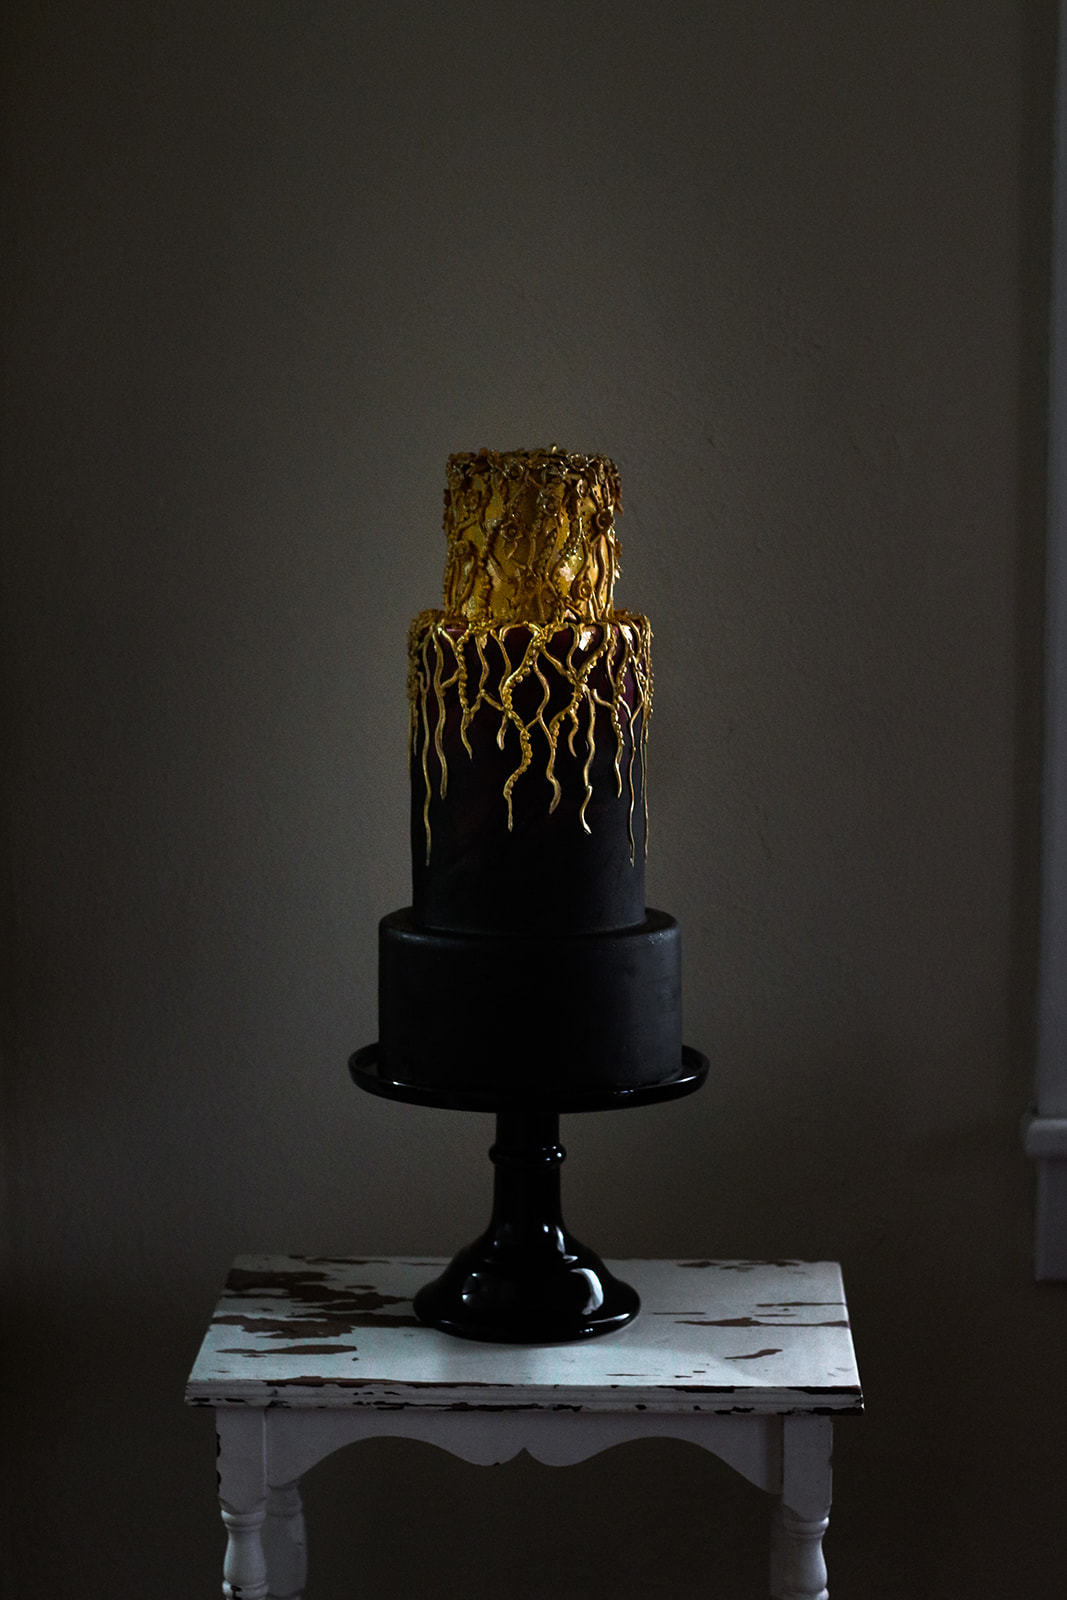 All black wedding cake with gold streaks